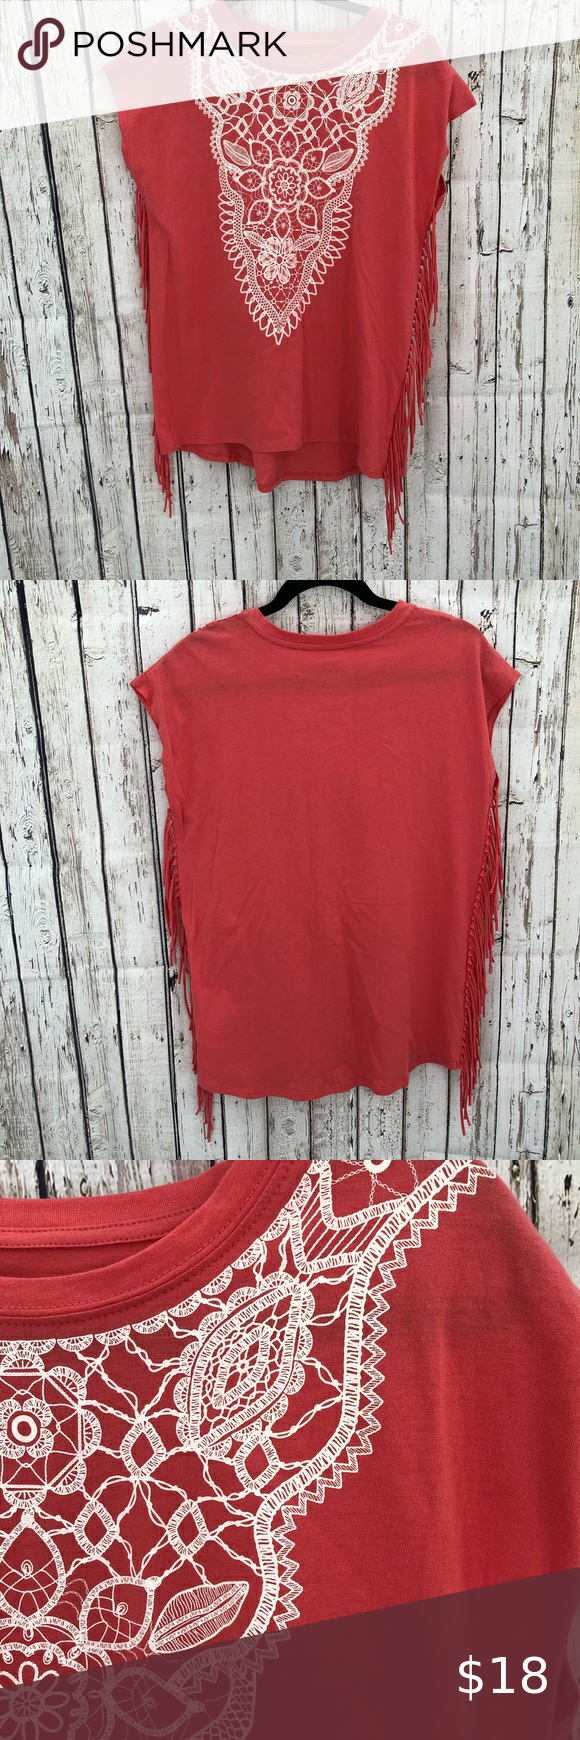 True Craft Coral fringe print sleeveless tank XL 100% cotton Coral color tee shirt tank top fringe on both sides and lace graphic print... sleeves size XL by True Craft  No flaws excellent condition  A#0023 True Craft Tops Tank Tops